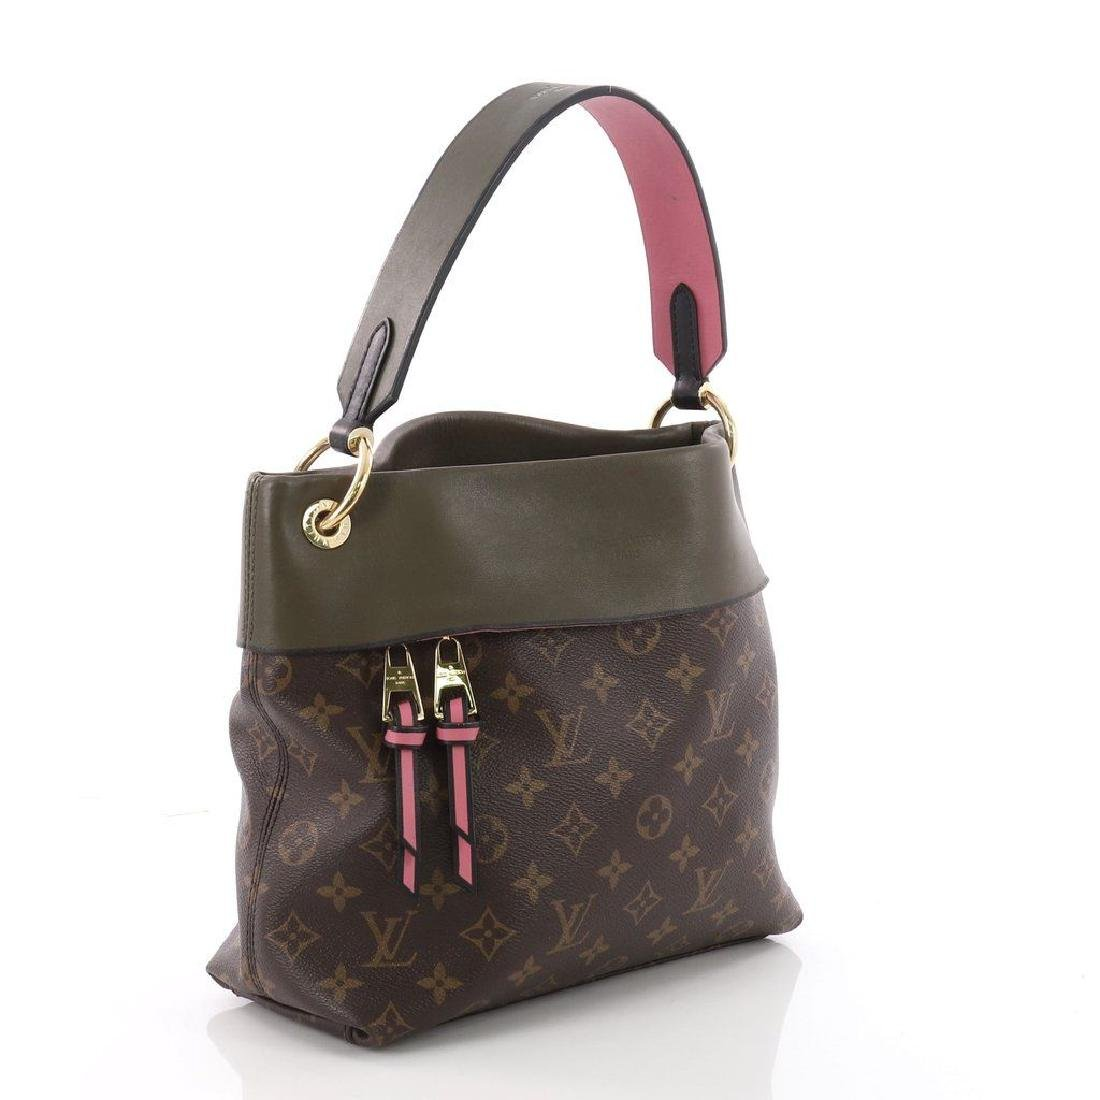 Louis Vuitton Tuileries Besace Bag with Strap in Olive - 2